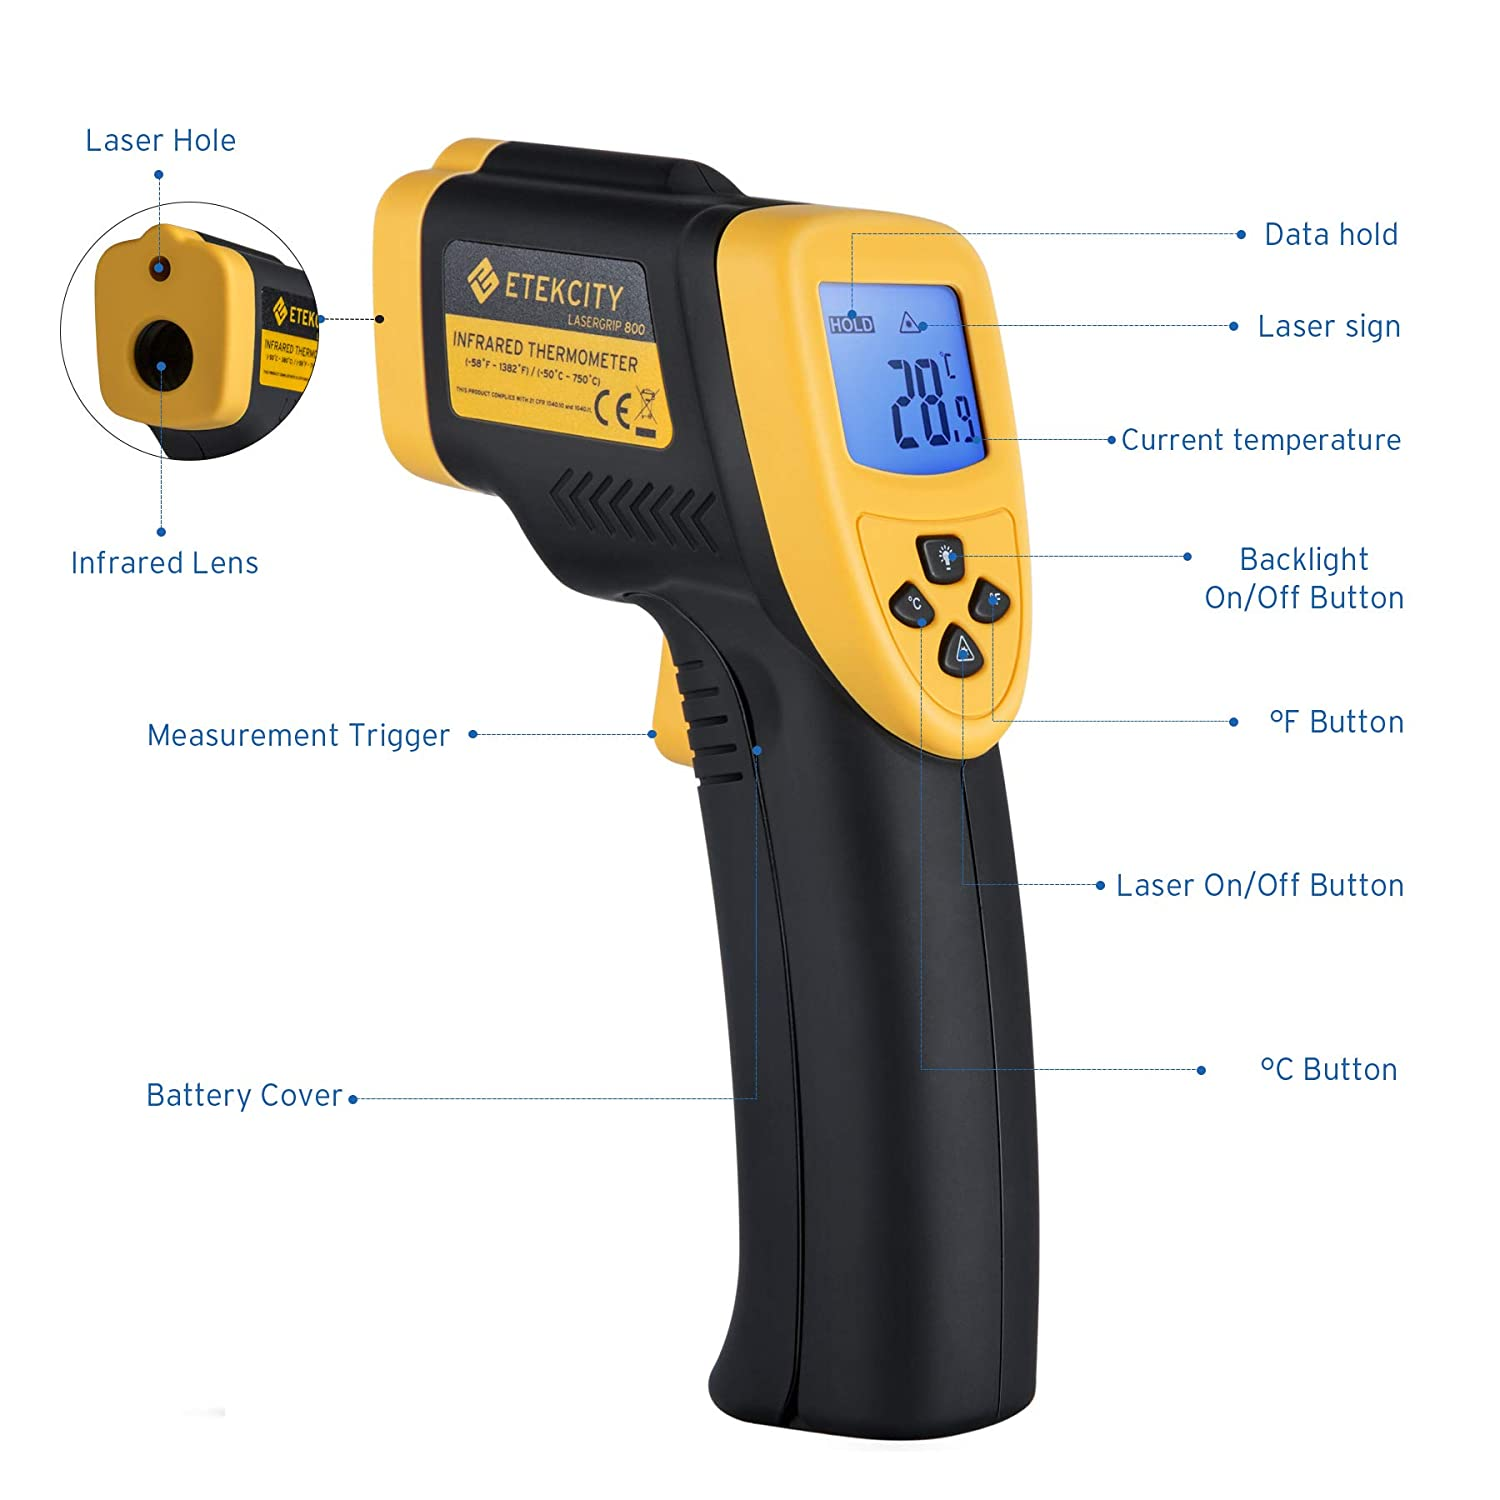 Etekcity Lasergrip 800 Digital Infrared Thermometer Laser Temperature Gun Non-contact -58 – 1382 -50 to 750 , Yellow Black